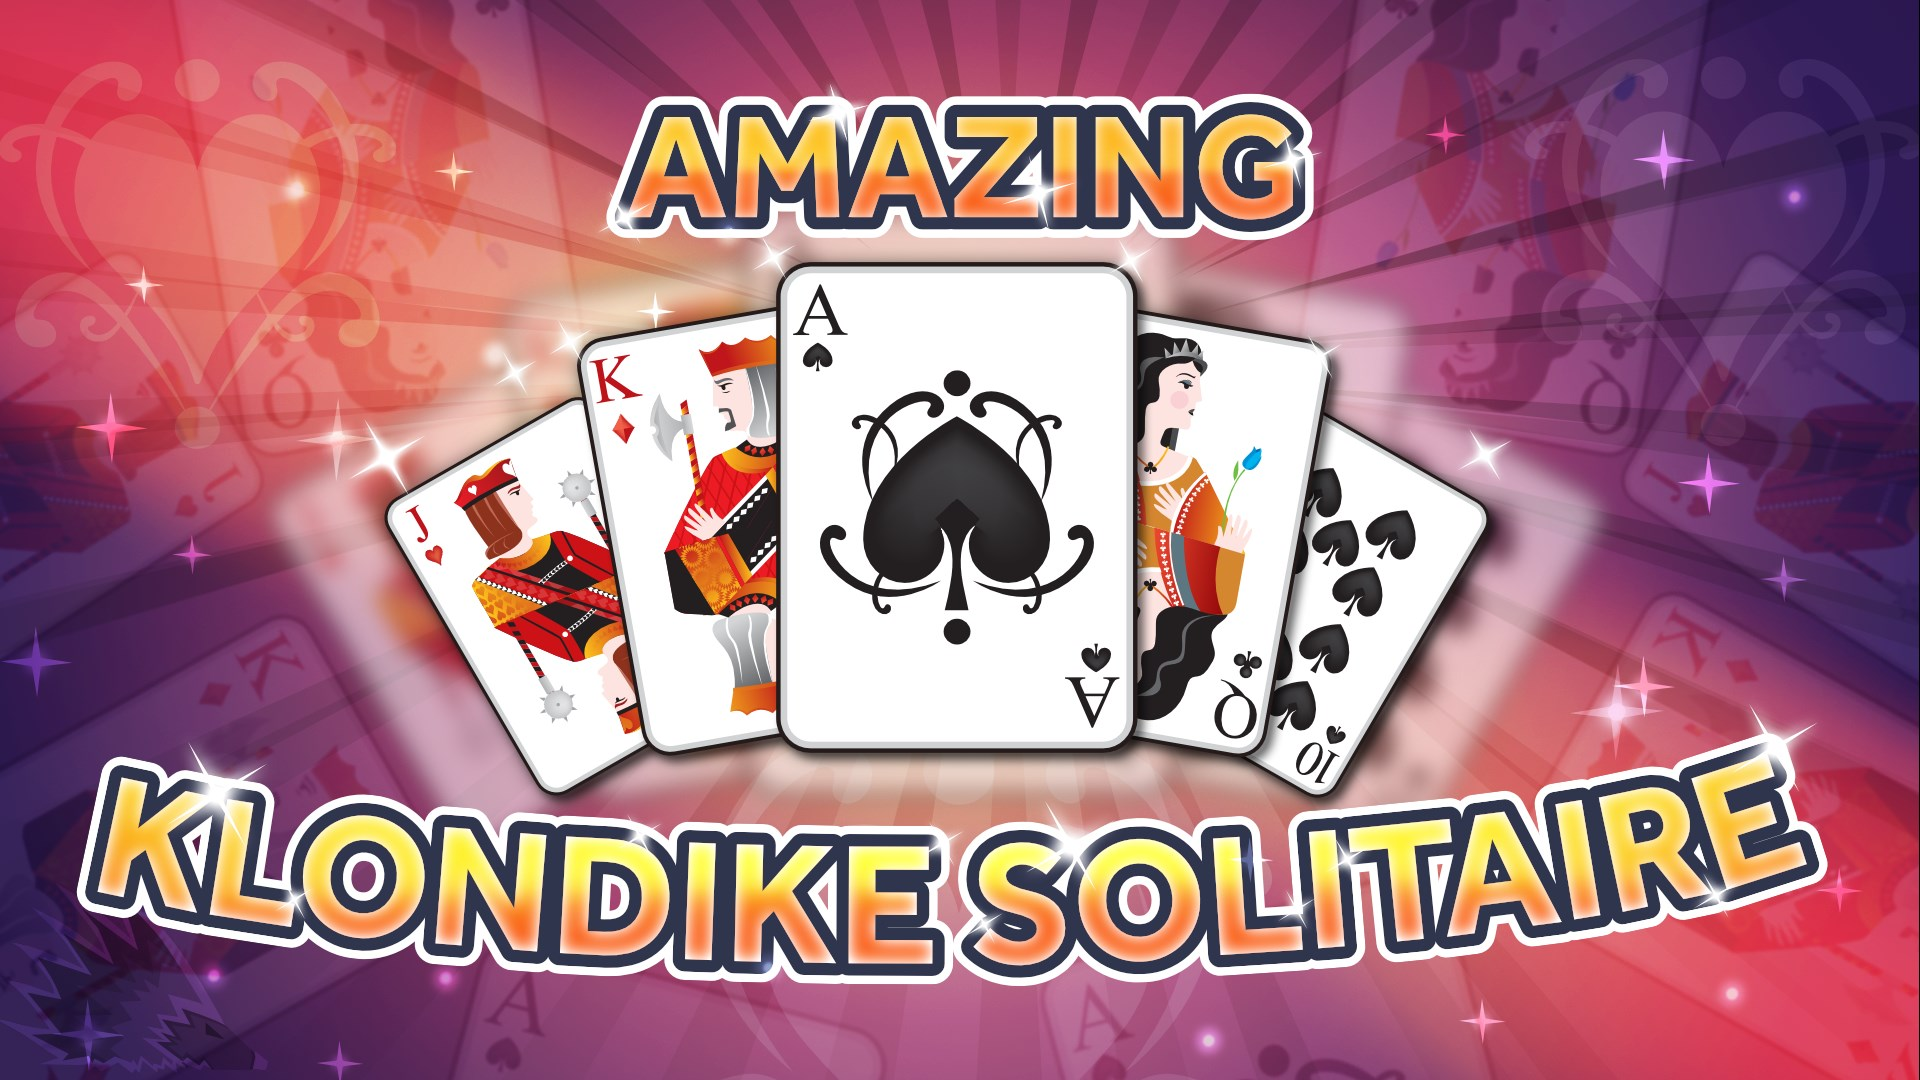 free klondike solitaire download for windows 7